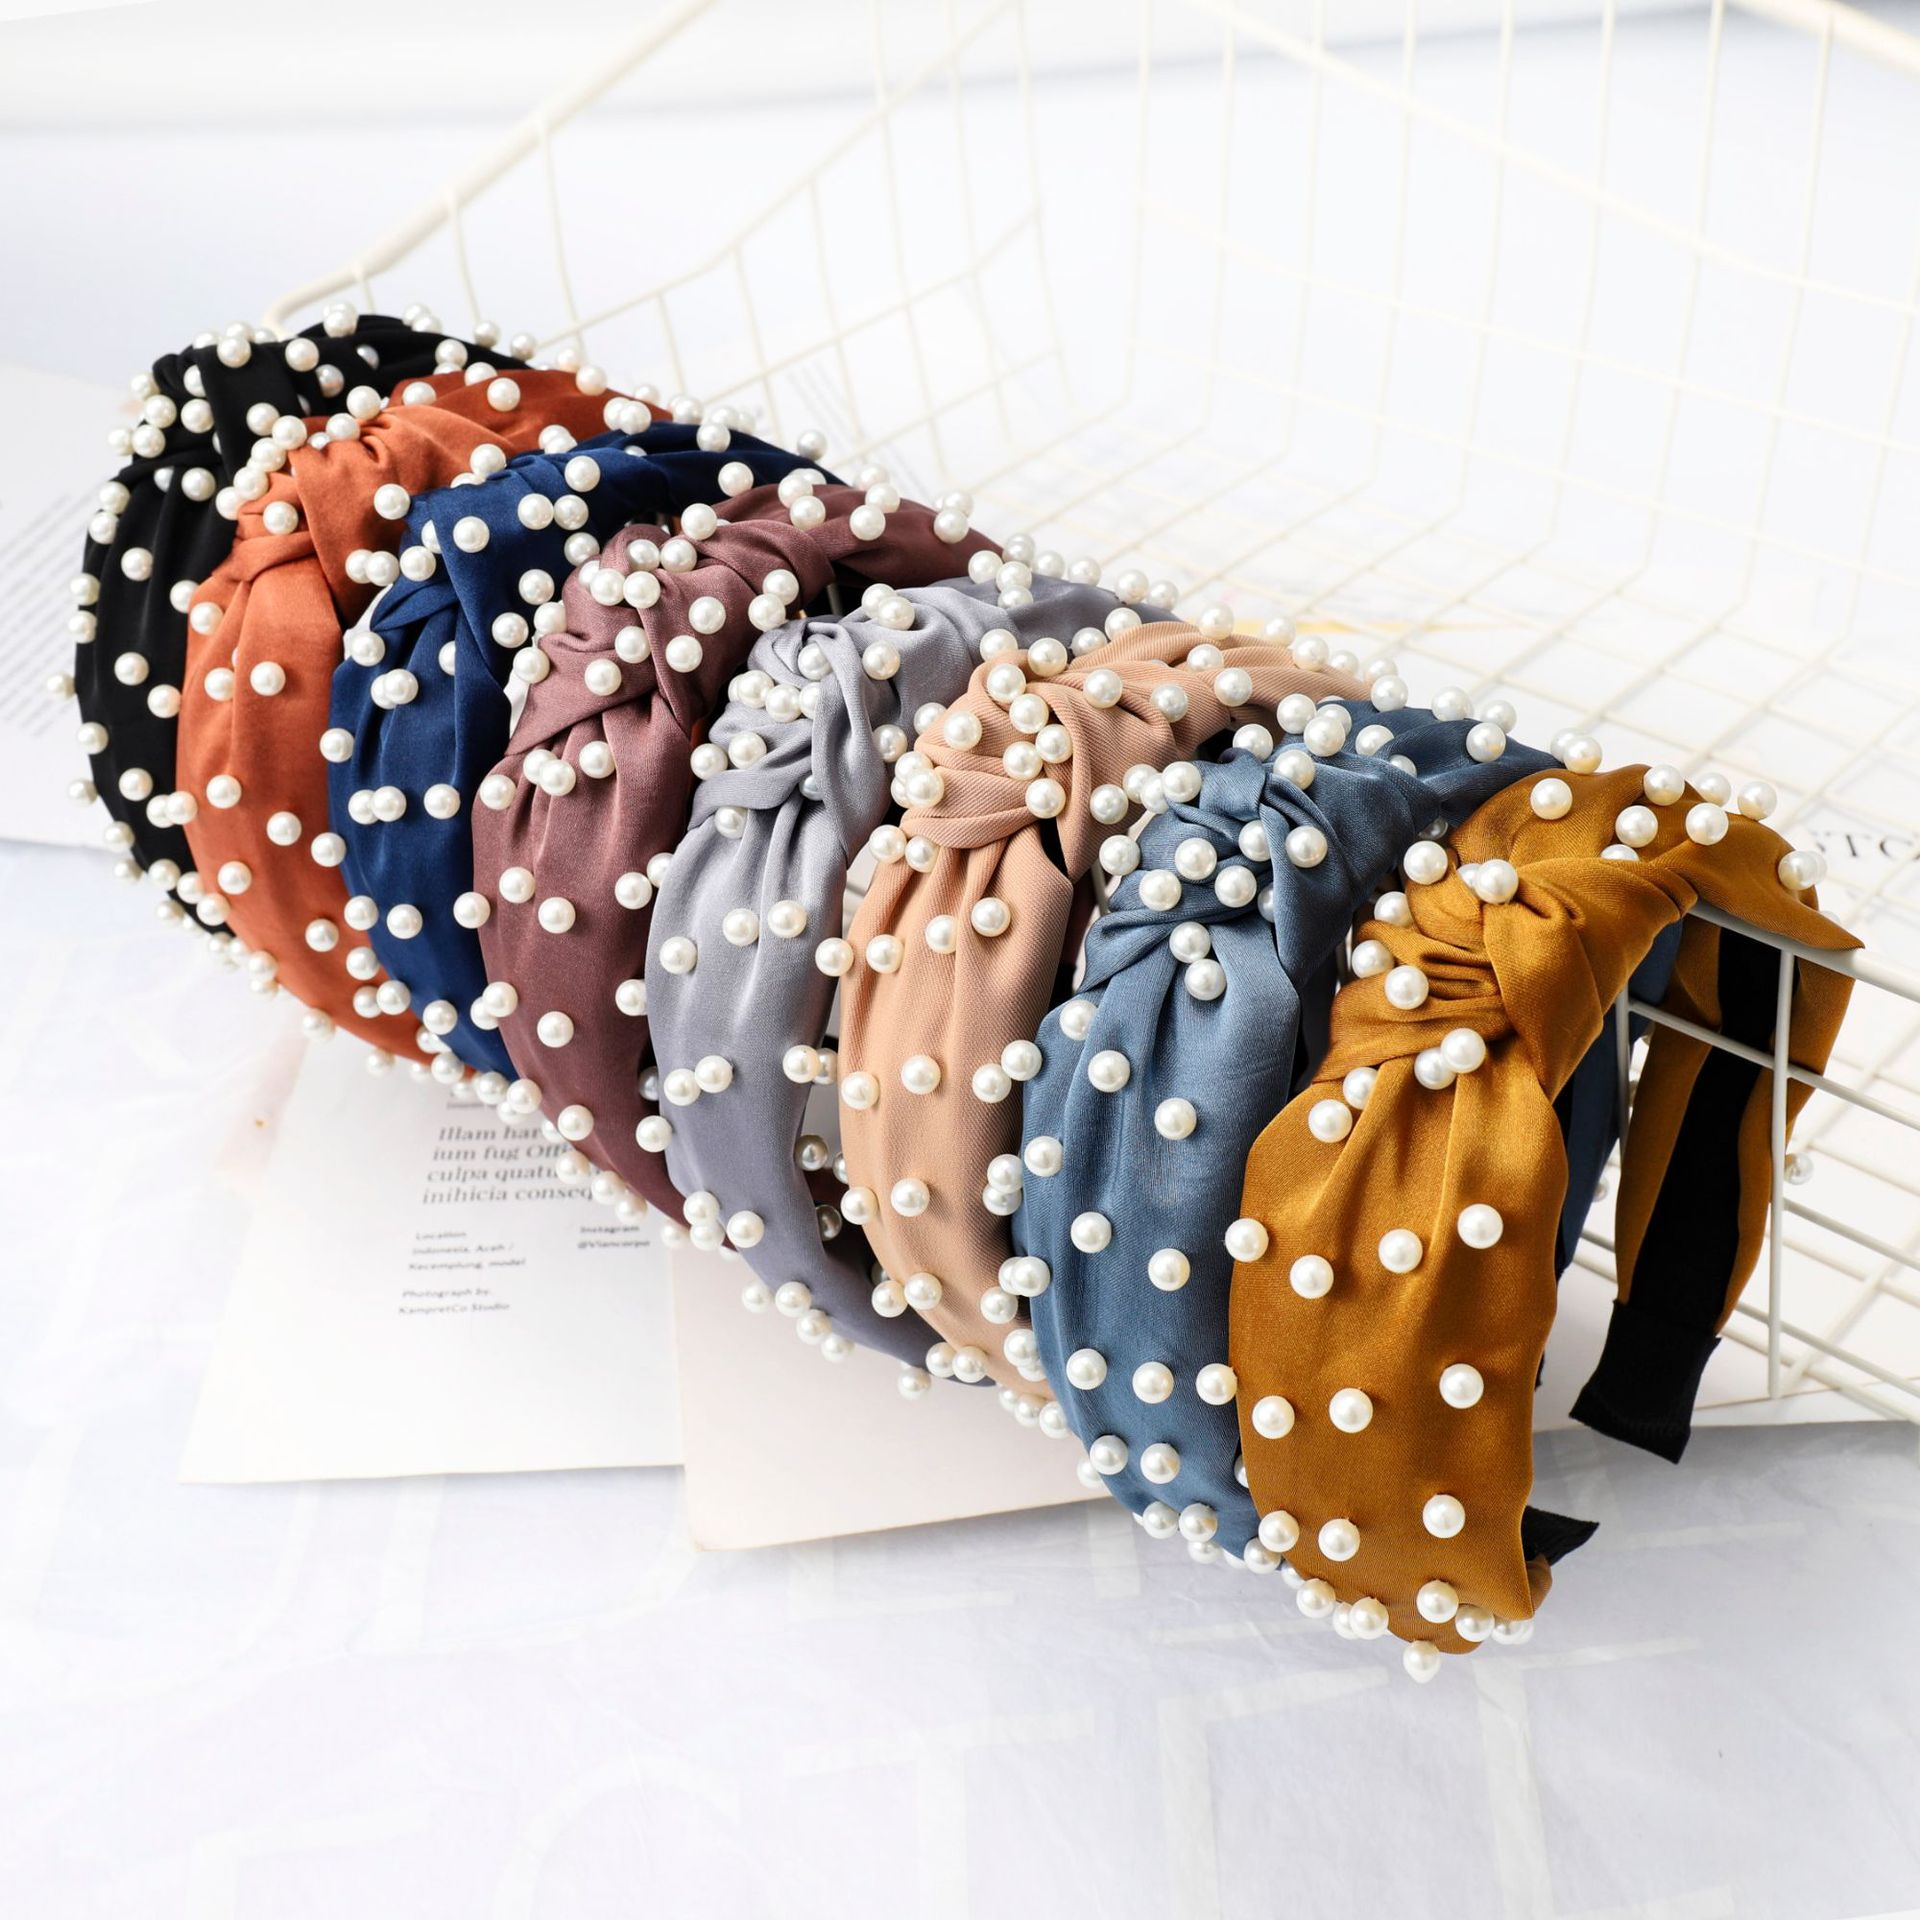 LRTOU Wholesale Korea Fashion Womens Head Band Accessories Custom Women Tie Knot Pearl Elastic <strong>Headband</strong> For Girls